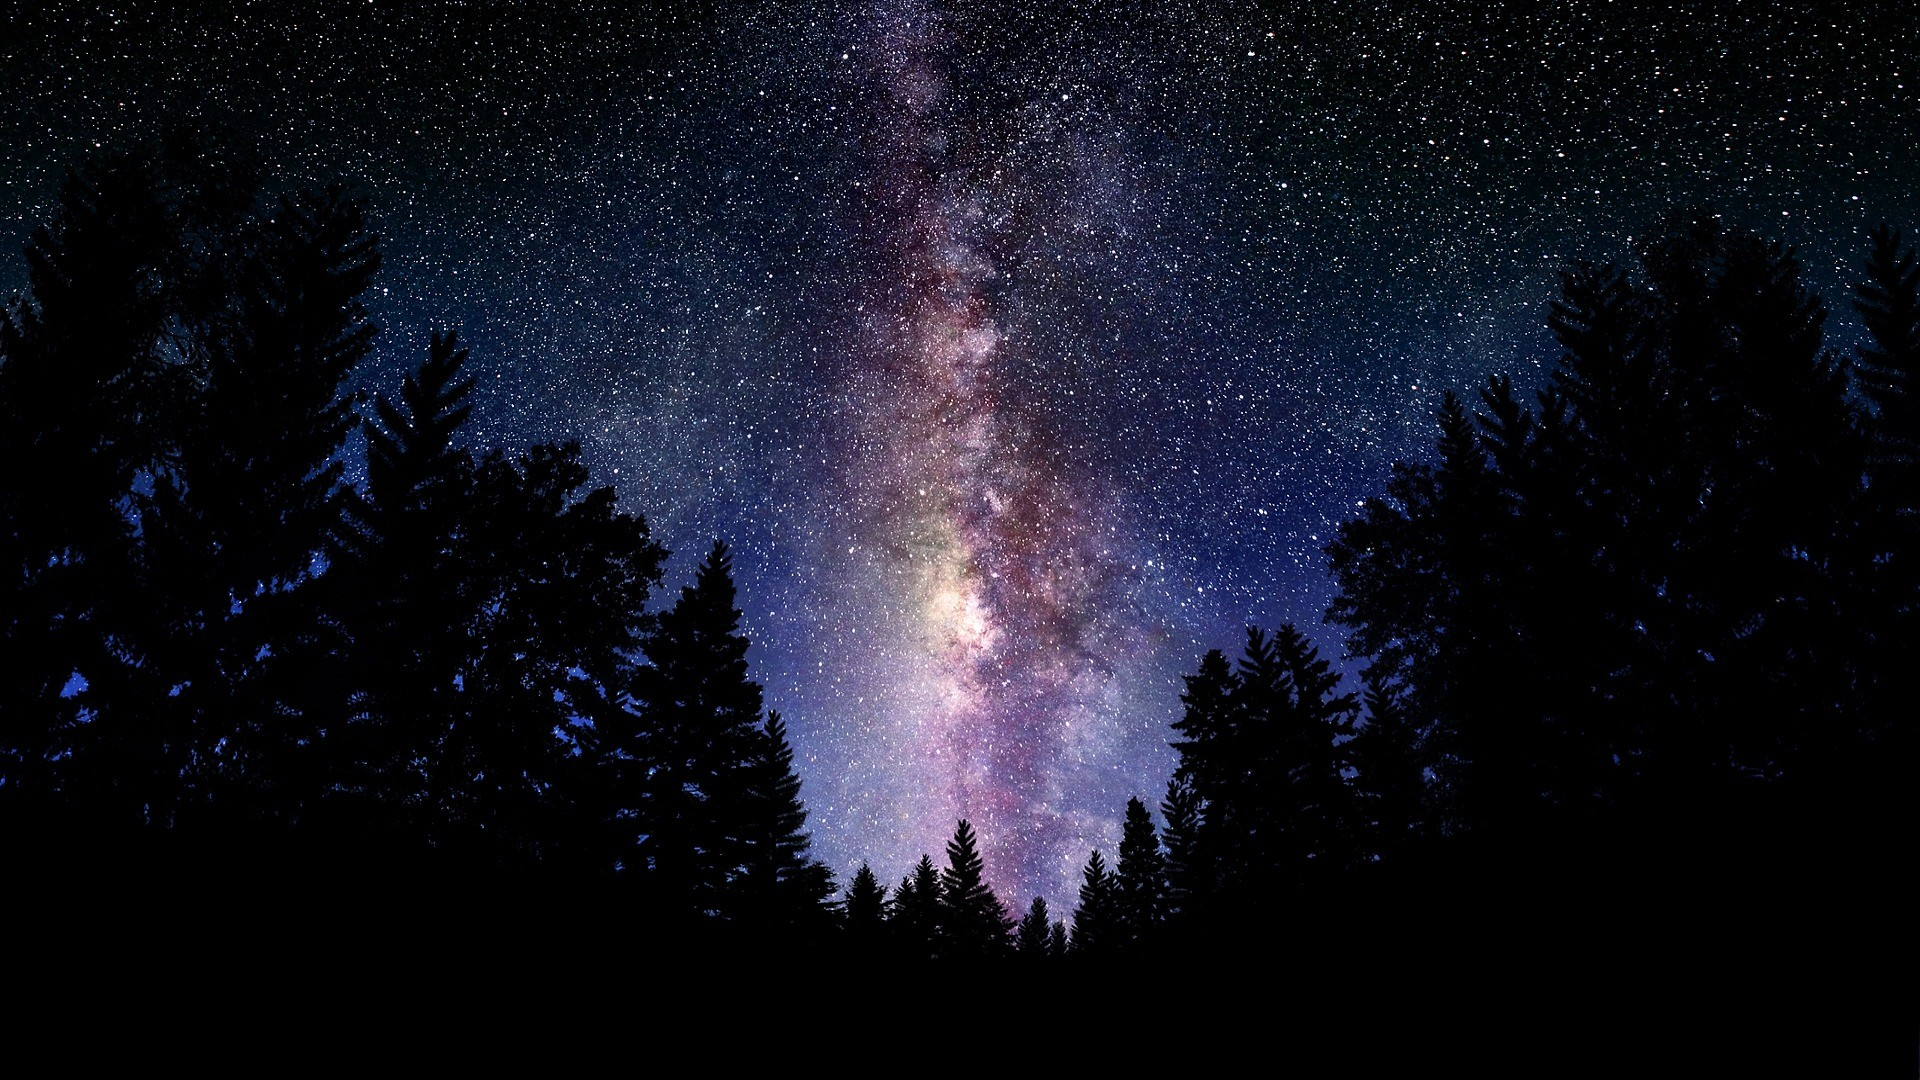 galaxy wallpaper hd 17